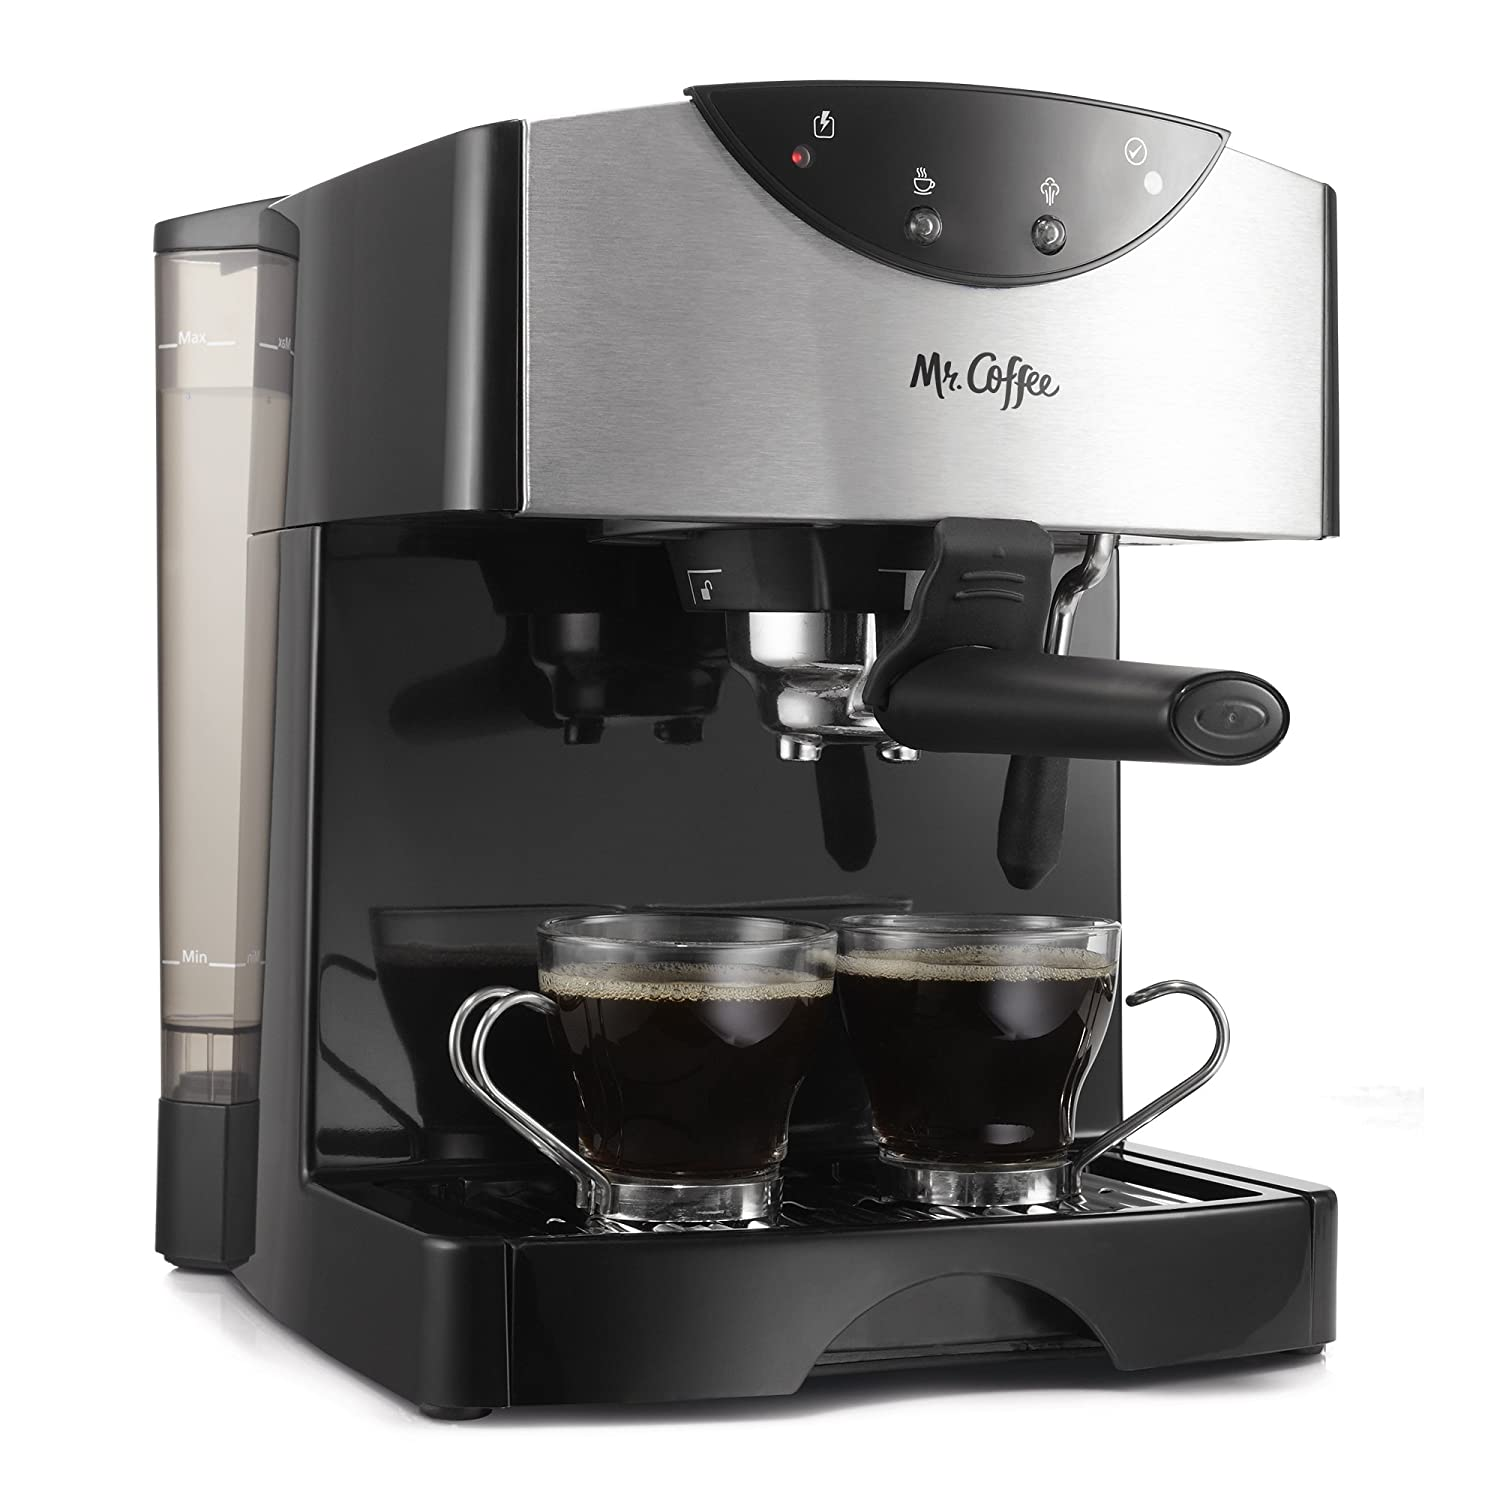 Mr. Coffee ECMP50 Automatic Dual Shot Espresso/Cappuccino System